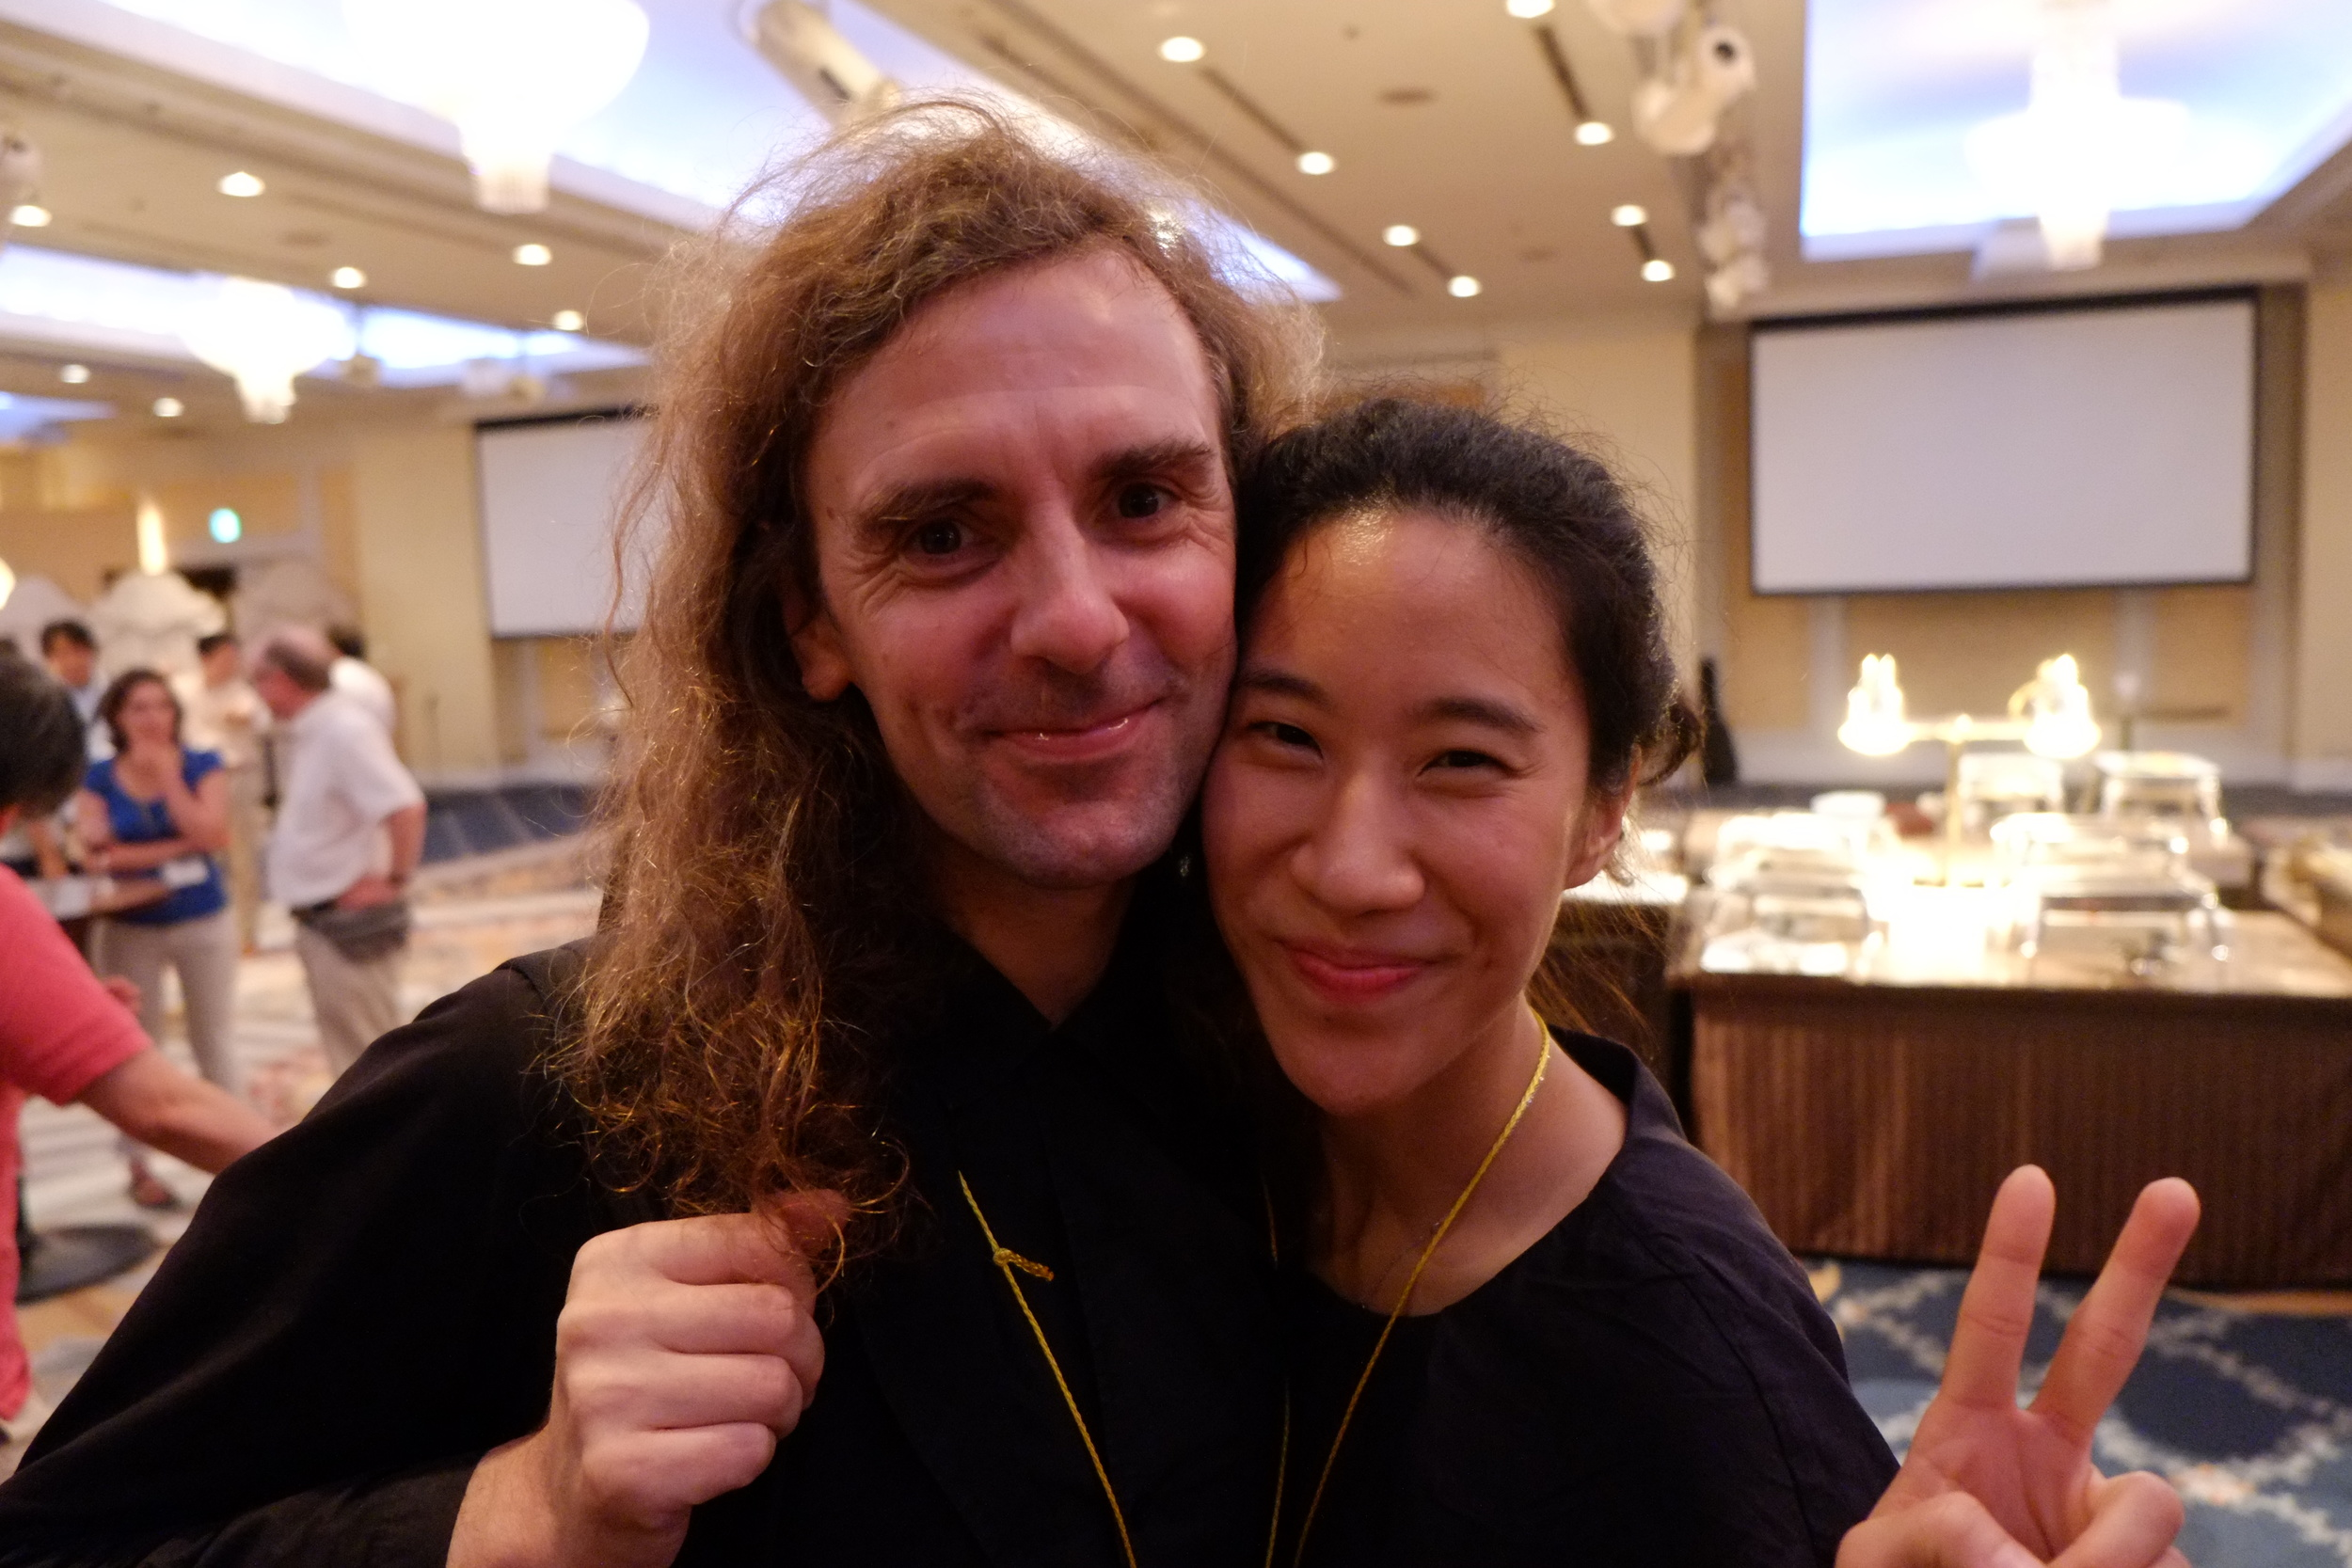 jean -pierre and hye-jin, toyko, august, 2014